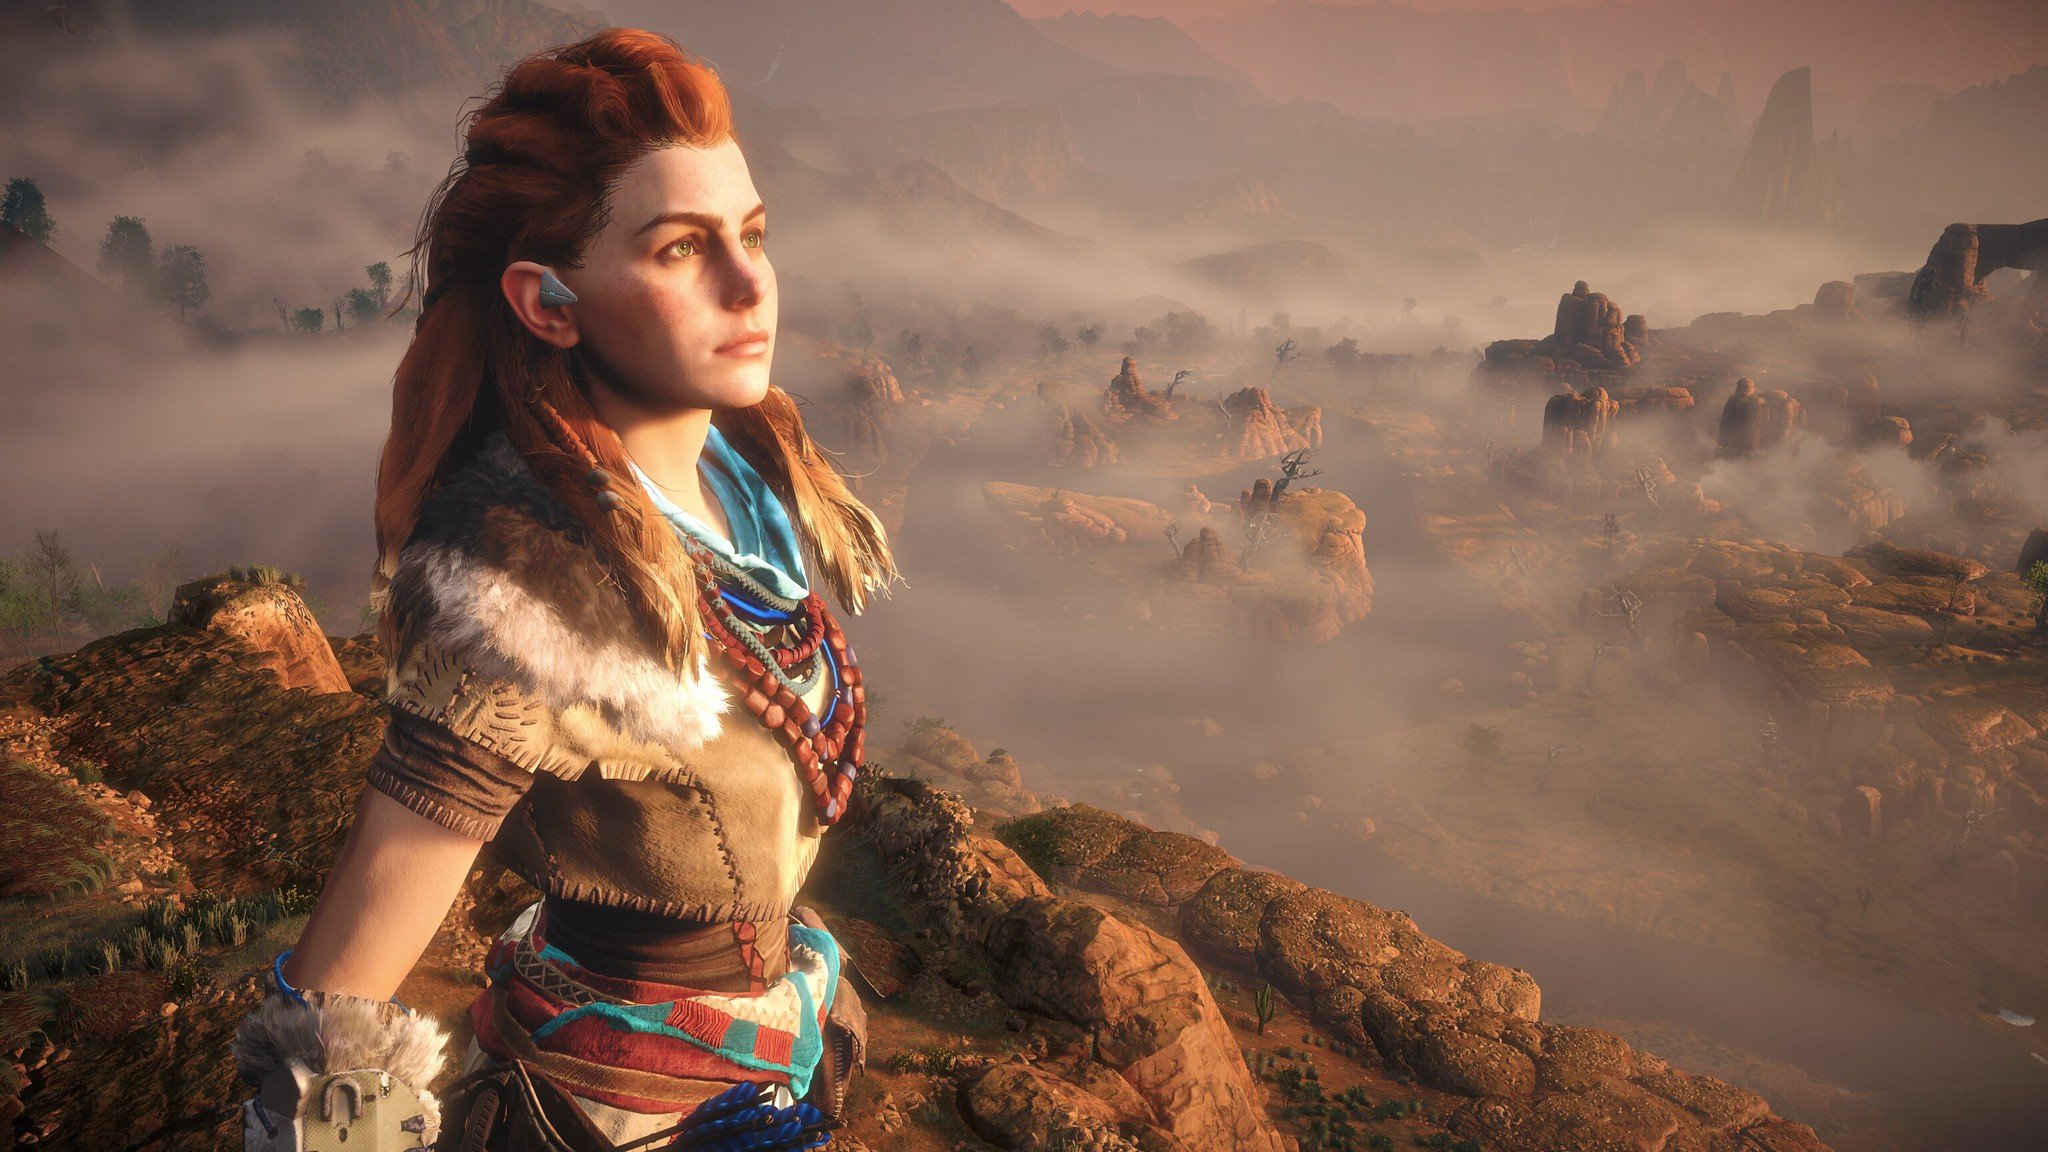 Guerrilla Games confirms Horizon Zero Dawn PC release